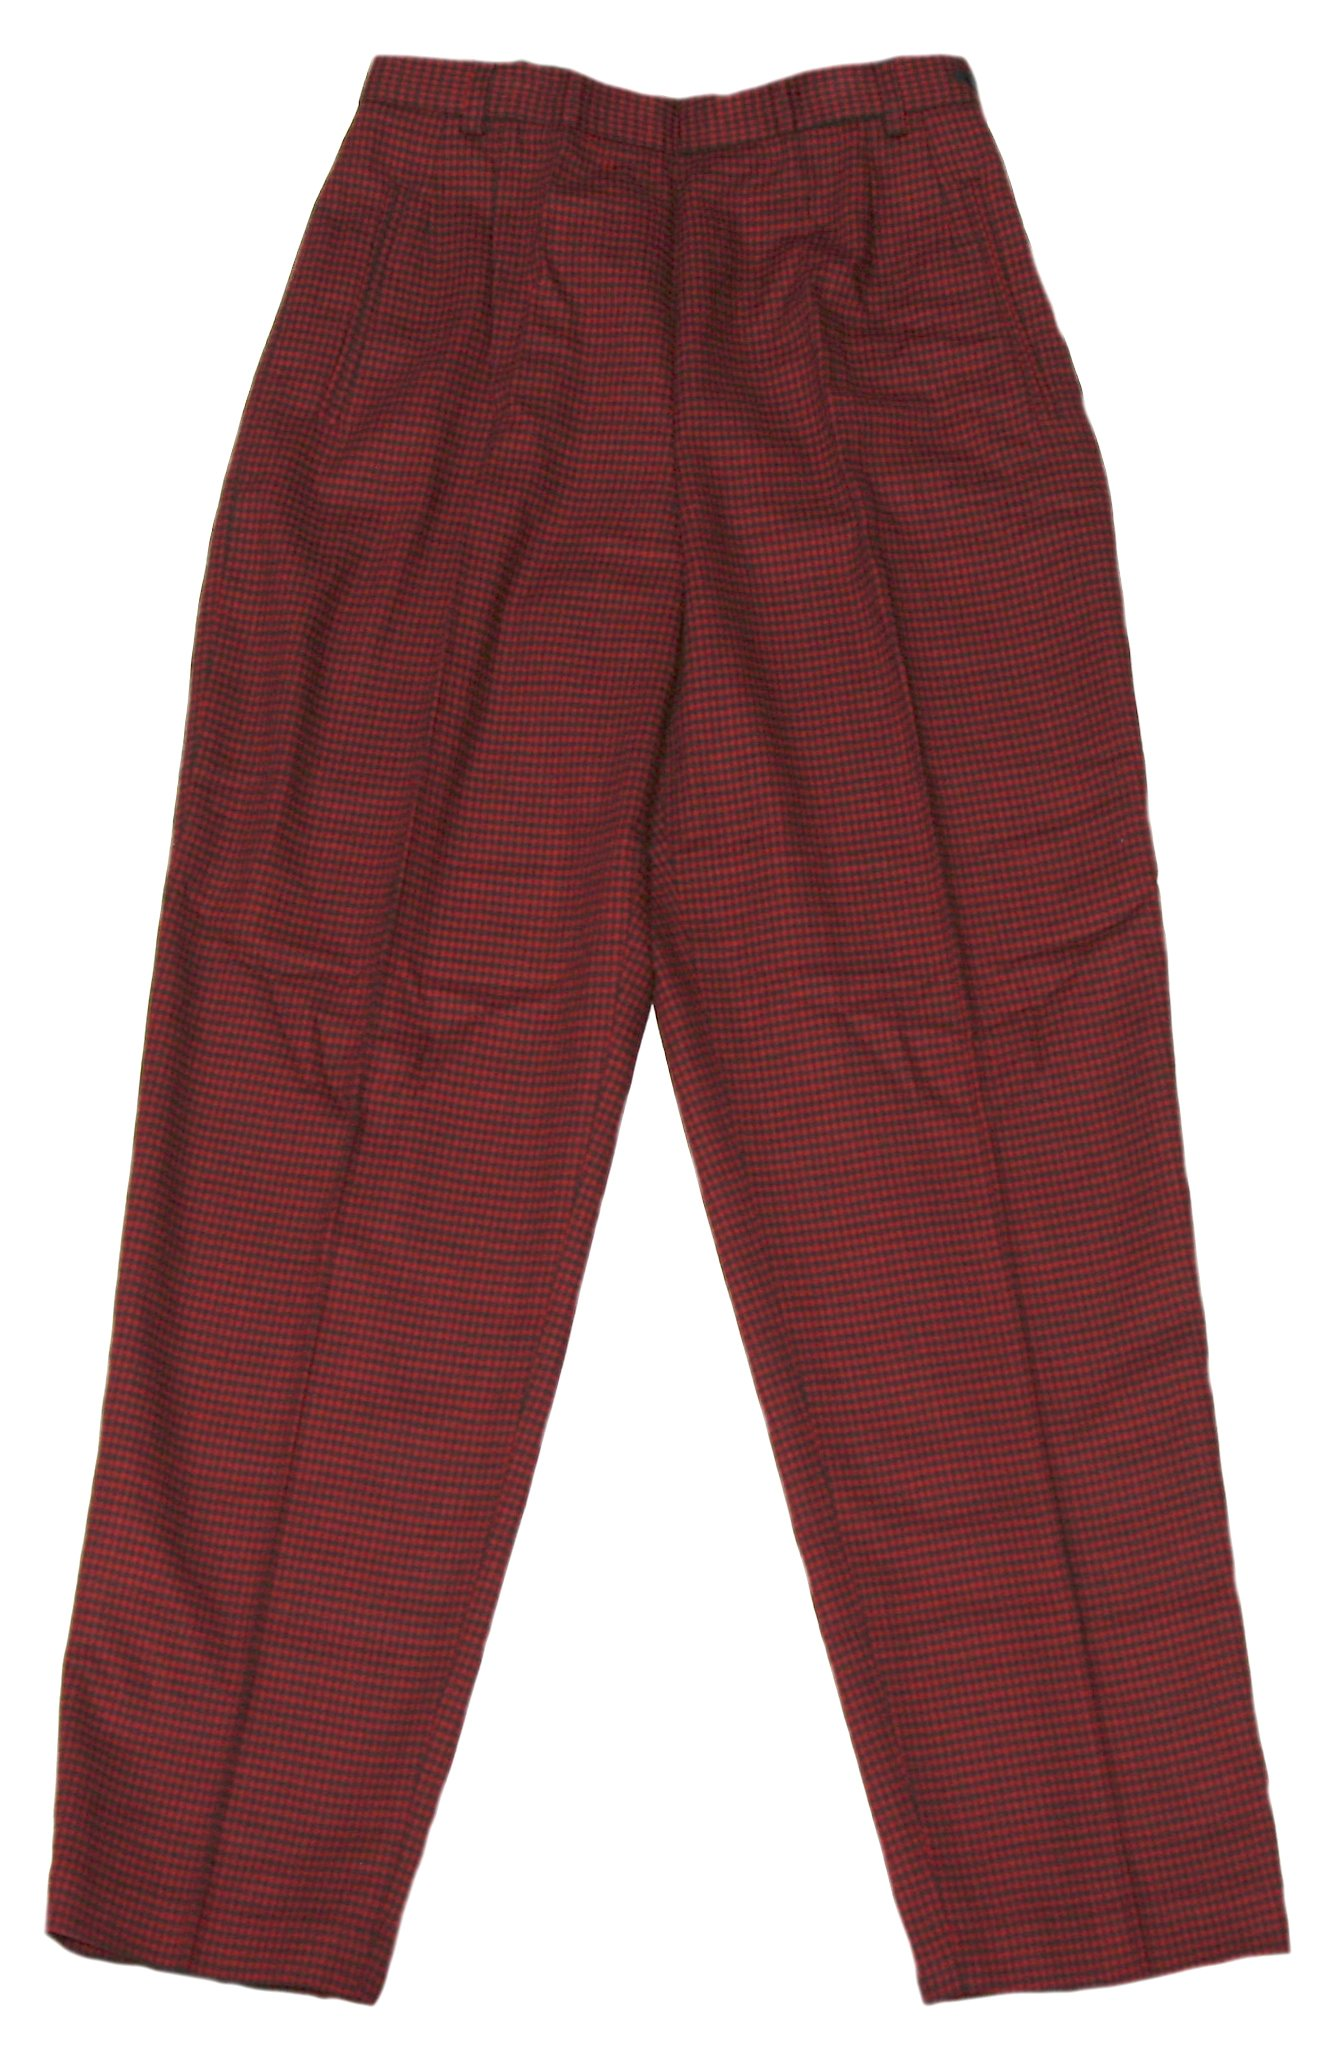 Liz Claiborne Women's Red Houndstooth Dress Pants Looking Glass Collection Size 8